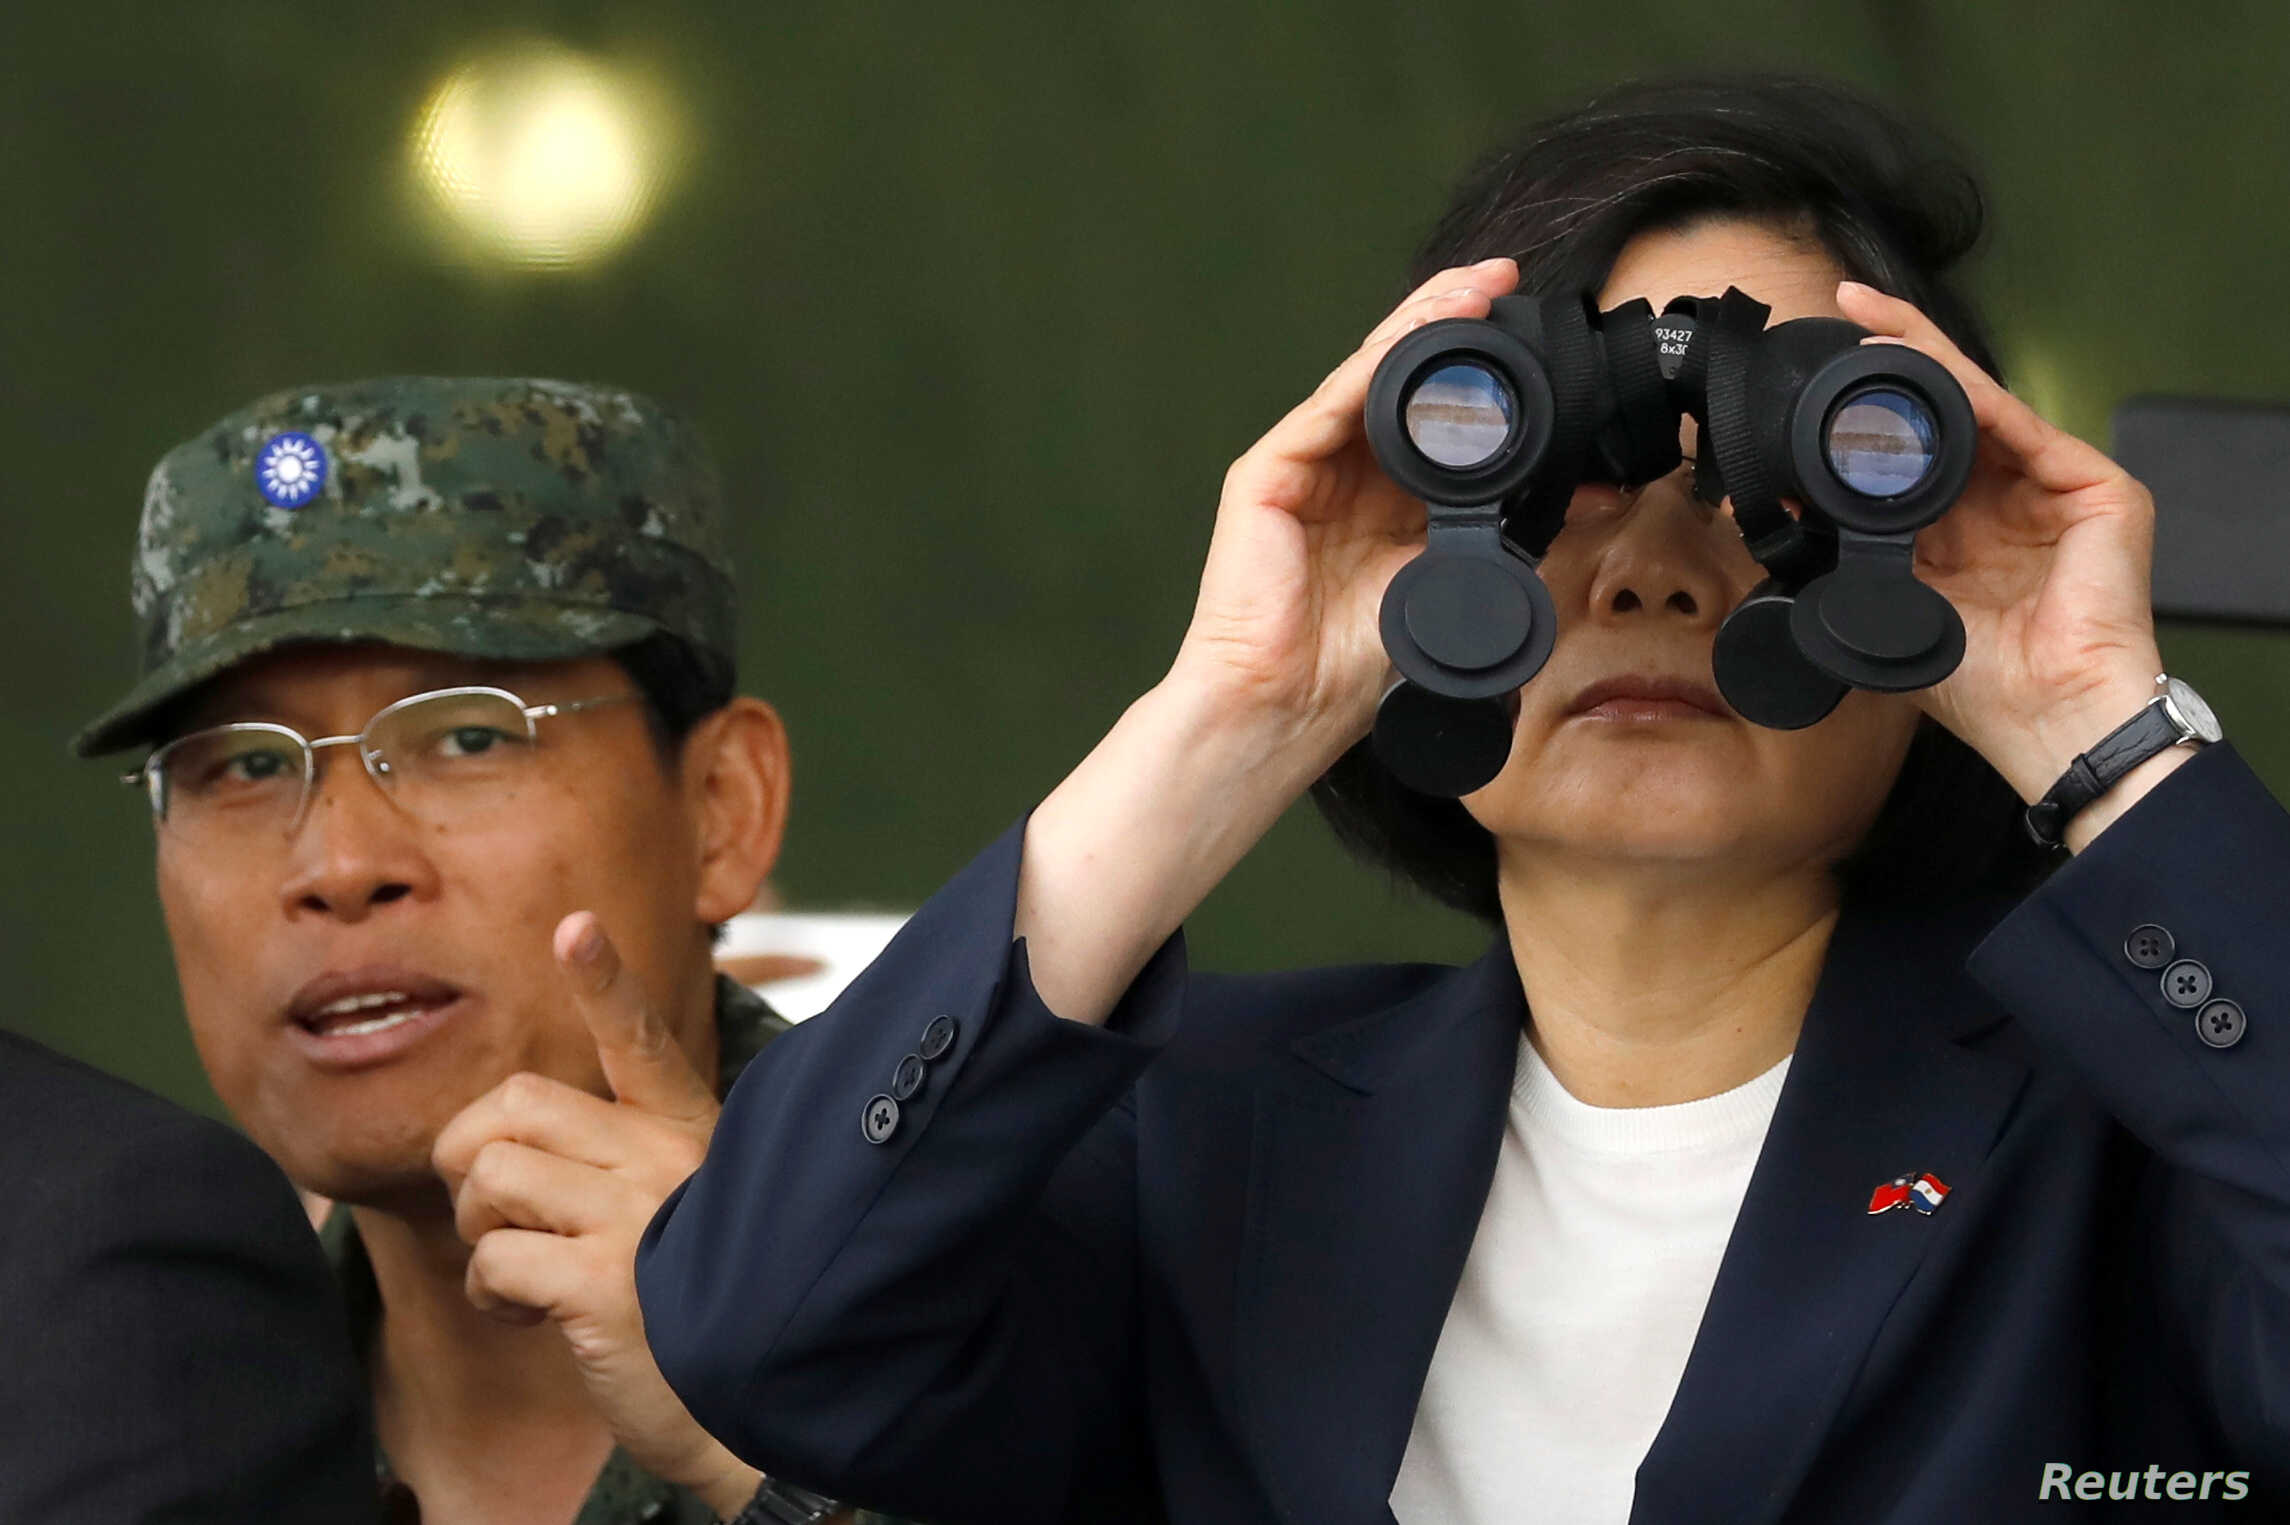 Taiwan's President Tsai Ing-wen looks through a pair of binoculars during anti-invasion drill, simulating the China's People's Liberation Army invading the island, in Taoyuan, Taiwan, Oct. 9, 2018.